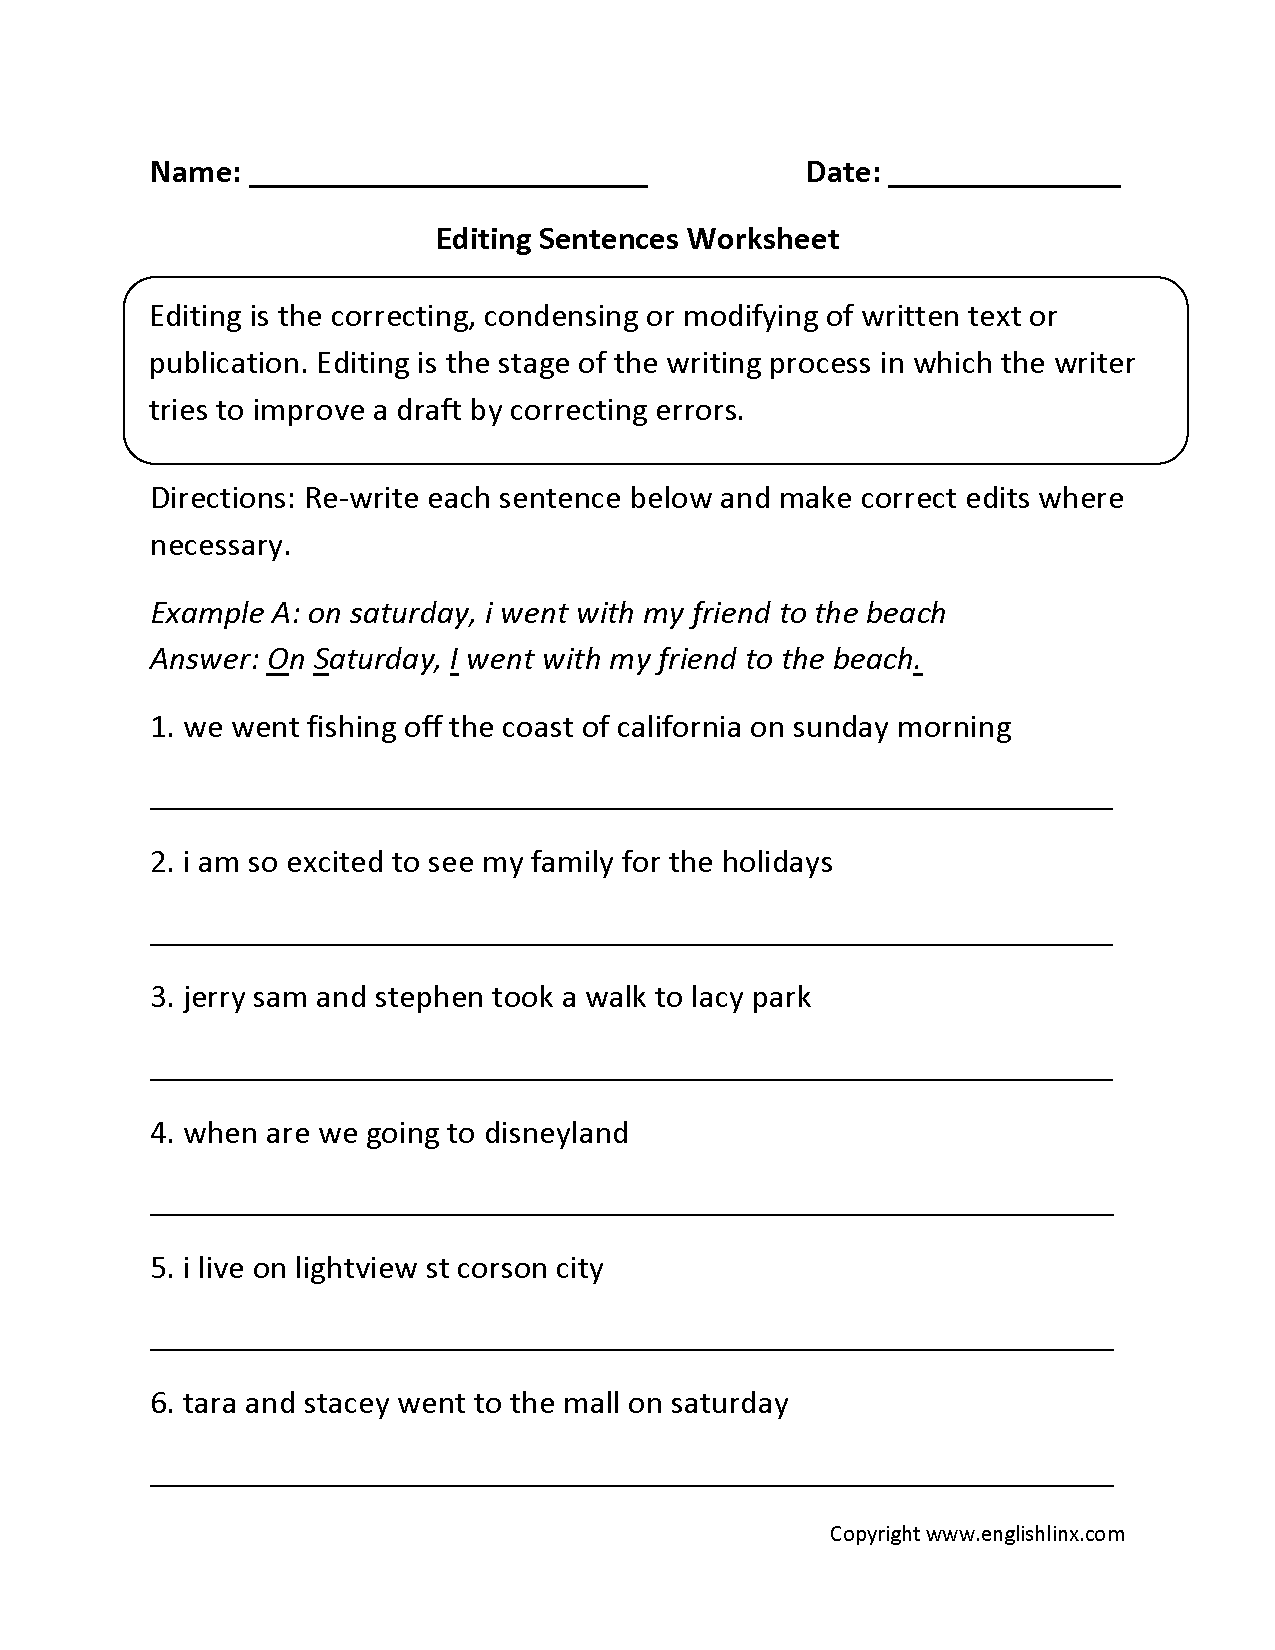 Worksheets 8th Grade Writing Worksheets writing worksheets editing worksheets